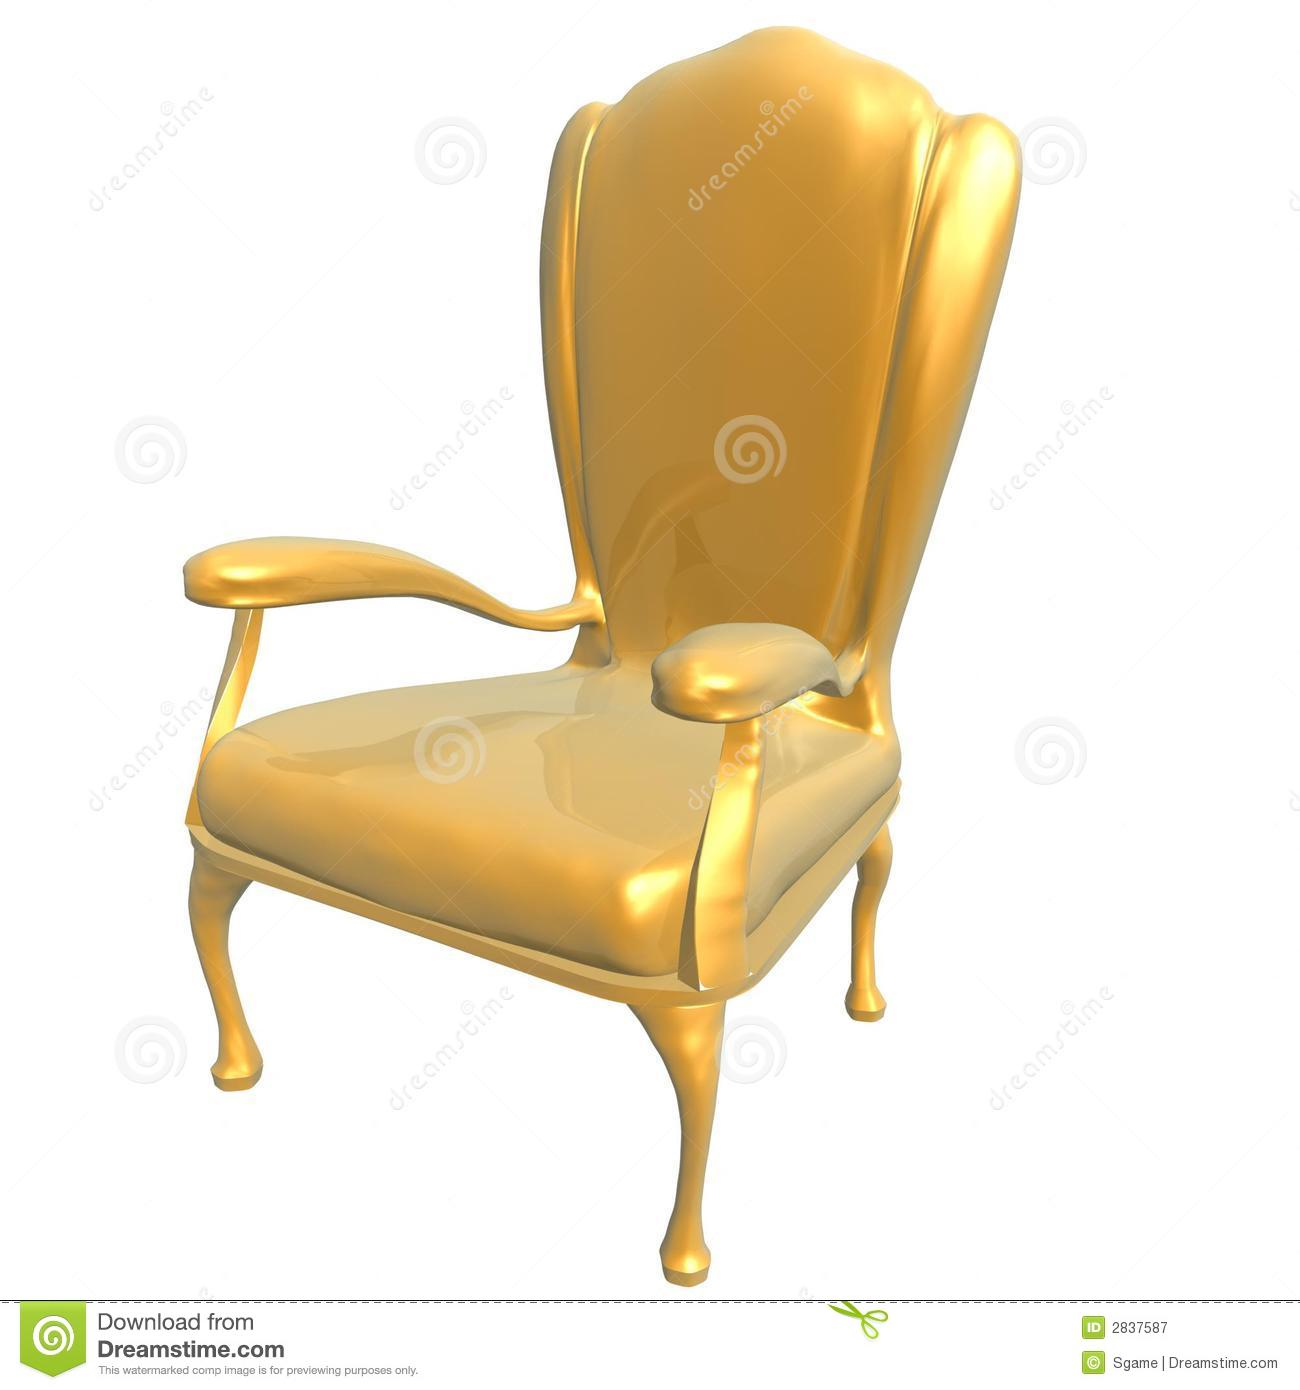 golden chair of king royalty free stock image - image: 2837596